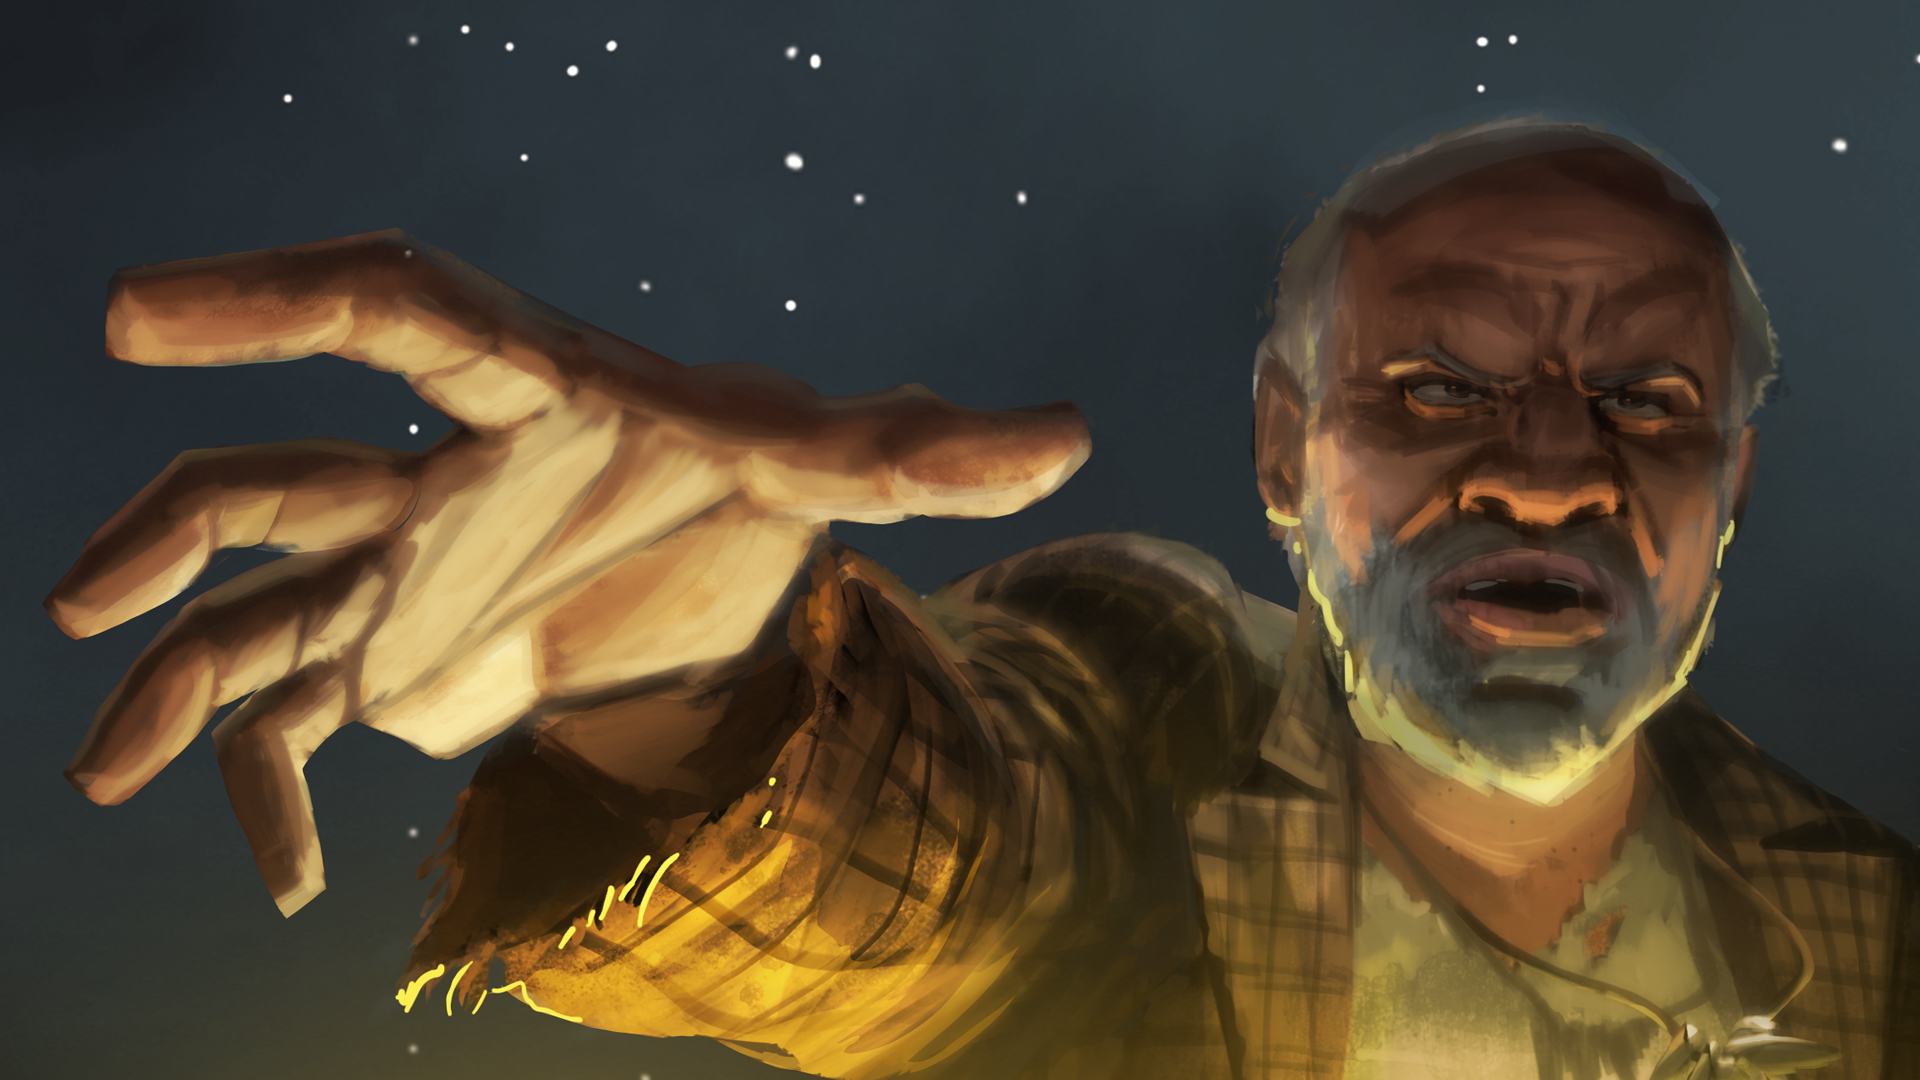 image - call of duty black ops ii zombies artwork 04   steam